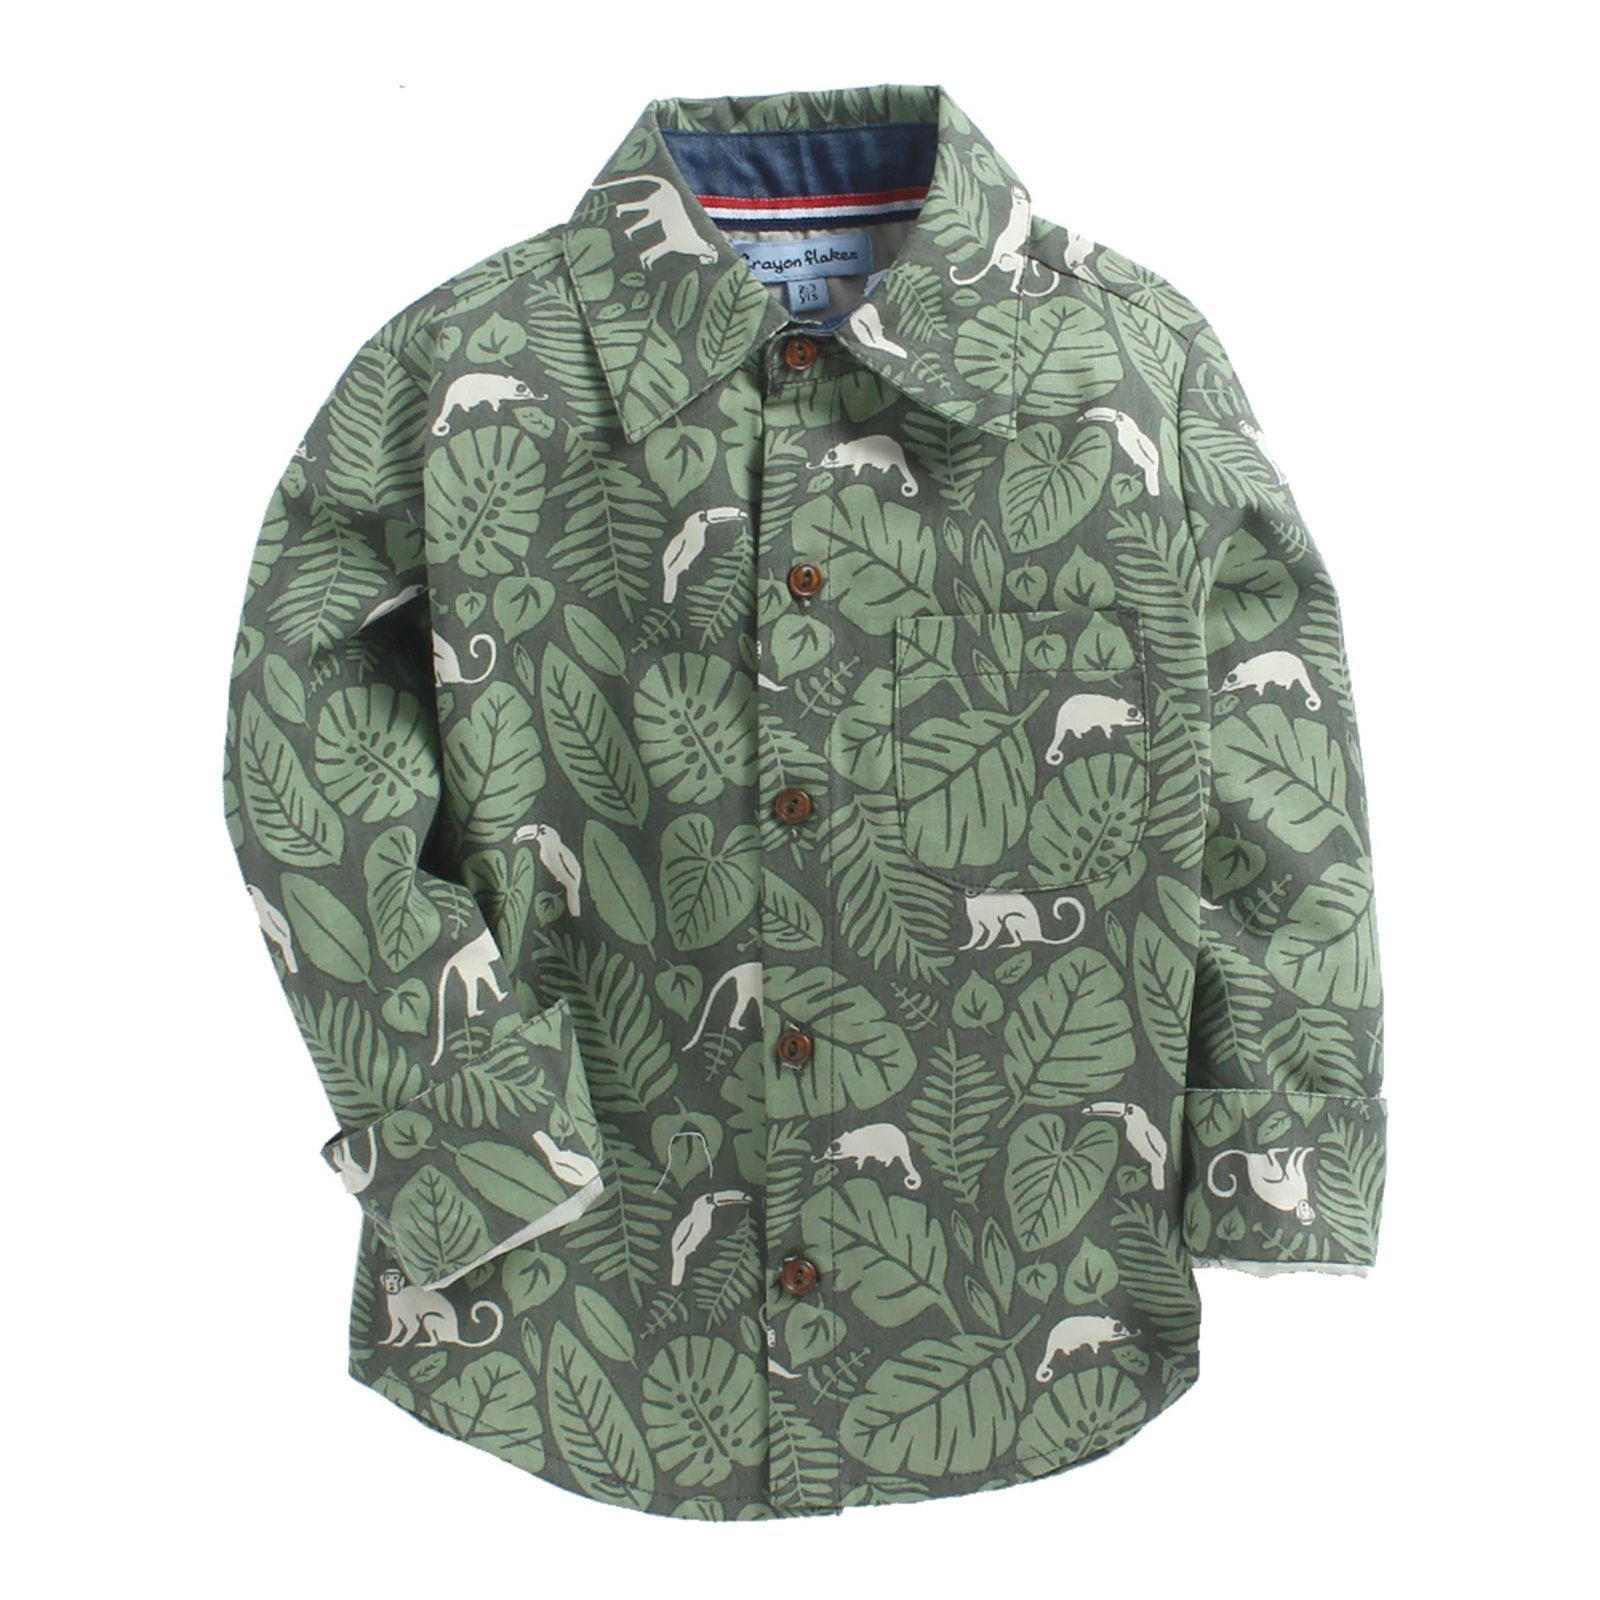 CrayonFlakes Green Long Sleeve Shirt in 100% Cotton with Jungle Print by CrayonFlakes (Image #1)